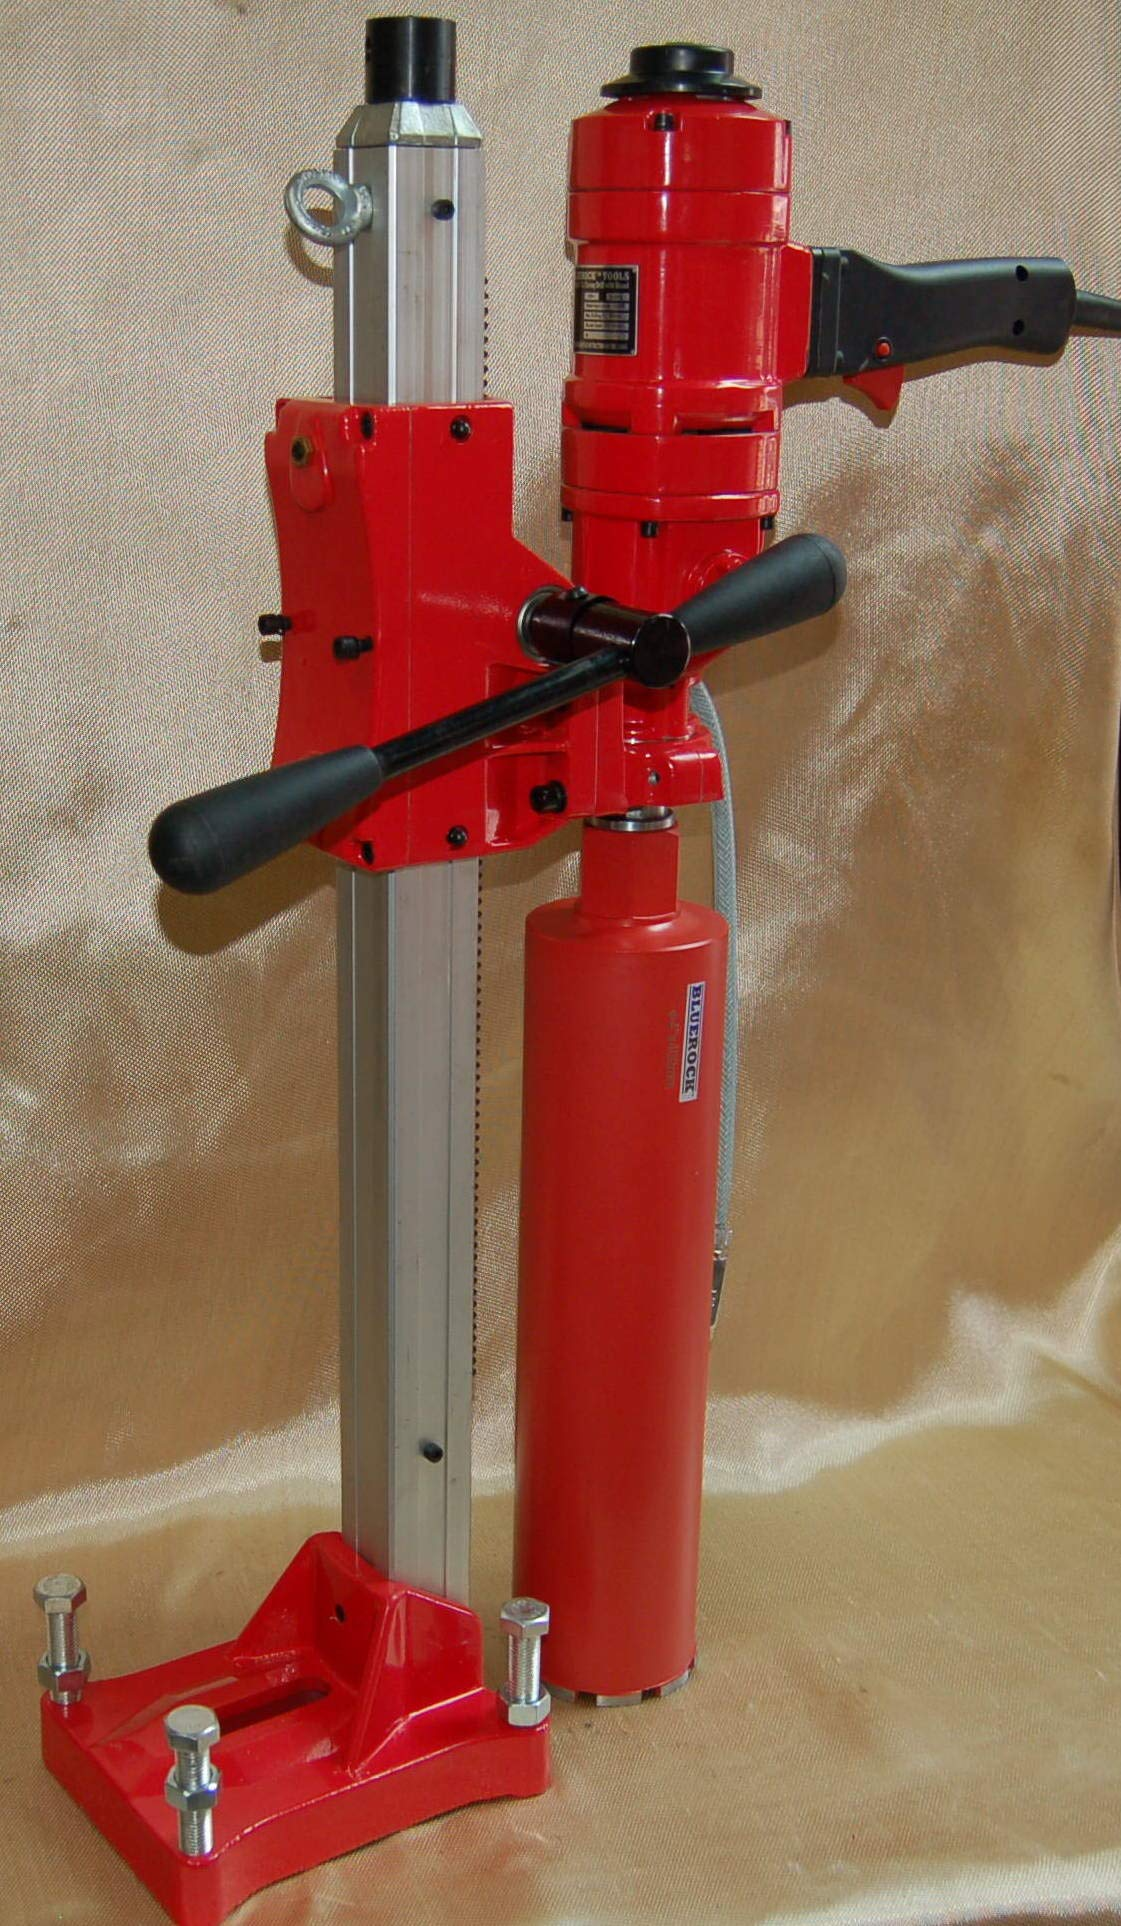 4'' Z-1WS CORE DRILL by BLUEROCK Tools 2 SPEED W/STAND CONCRETE CORING WITH: 1'',2'',3'',4'' DIAMOND WET CORE BITS